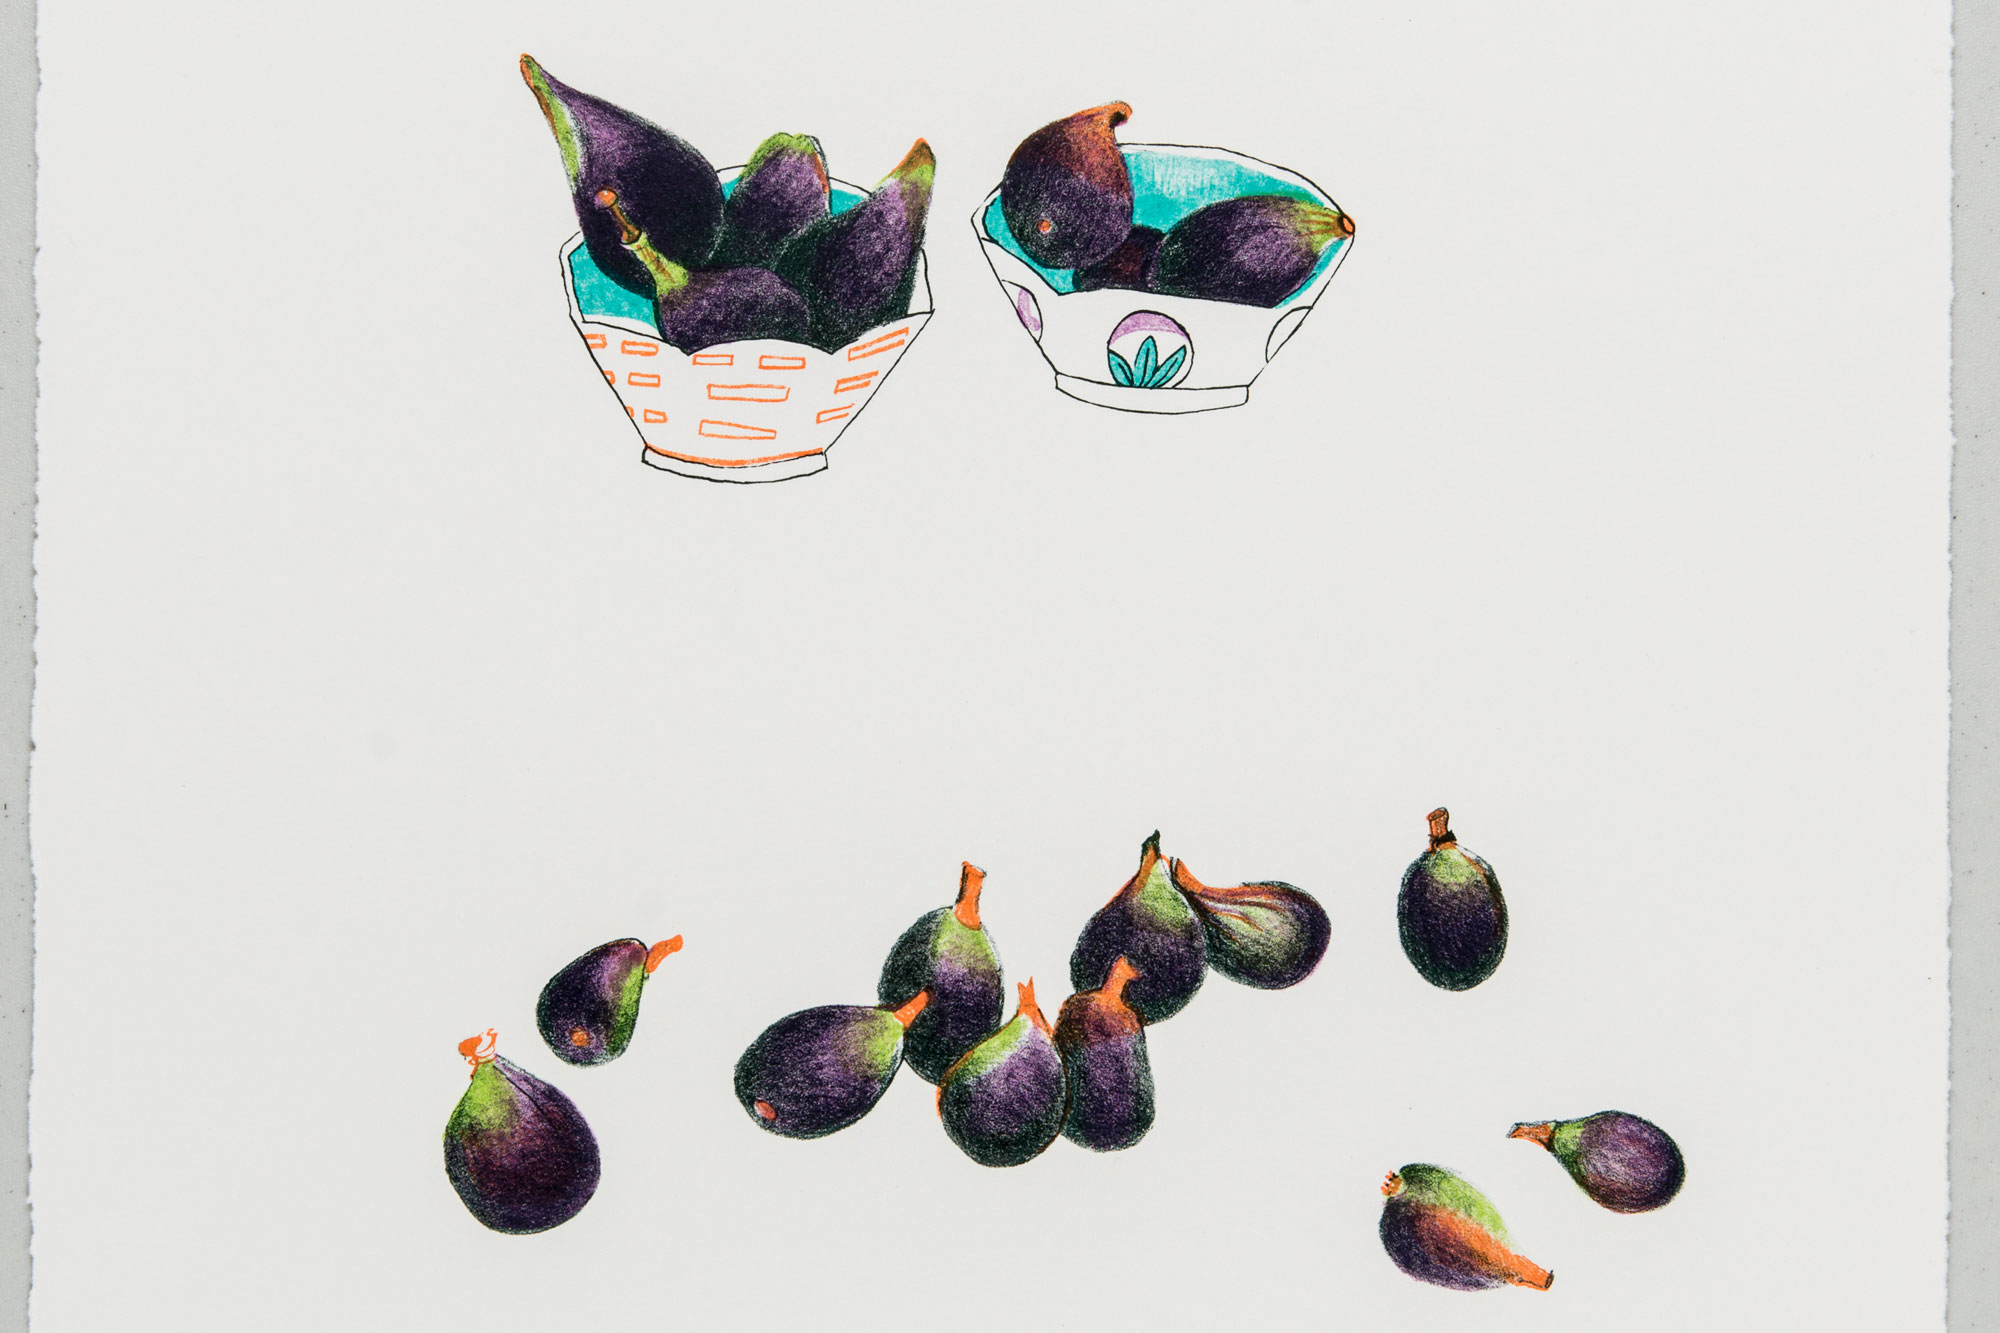 Two bowls of figs, with loose figs.